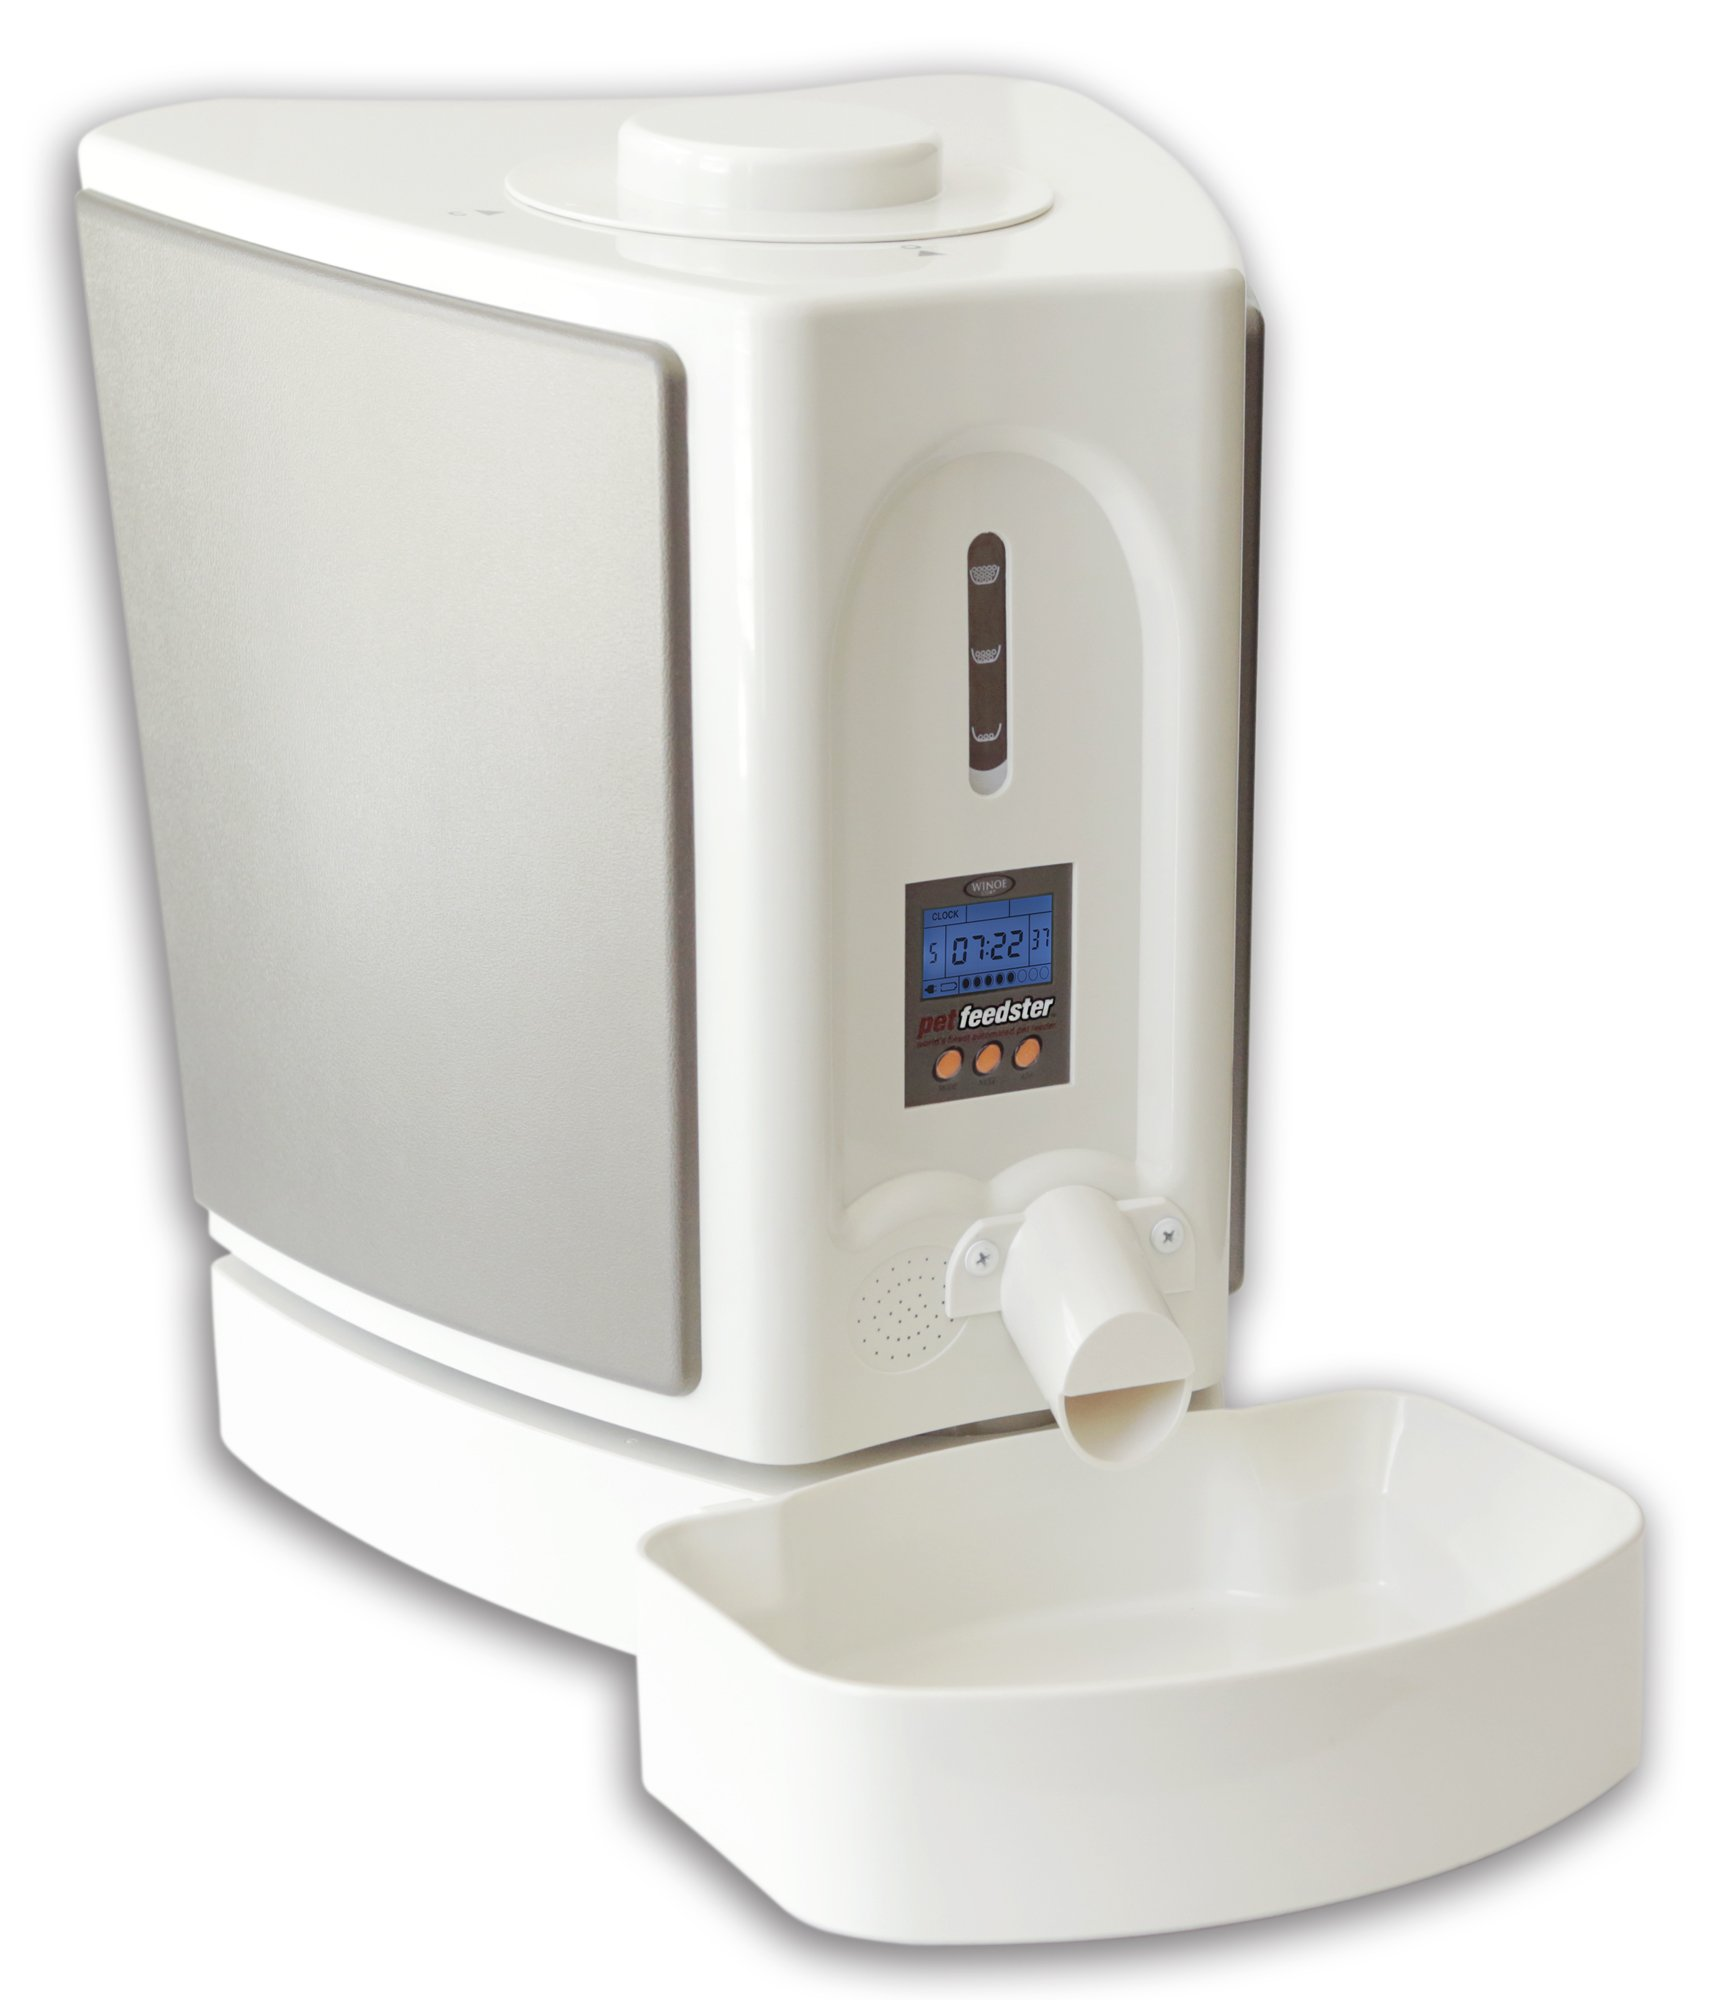 New! Pet Feedster PF-10 PLUS CAT - Automated Pet Feeder for Cats